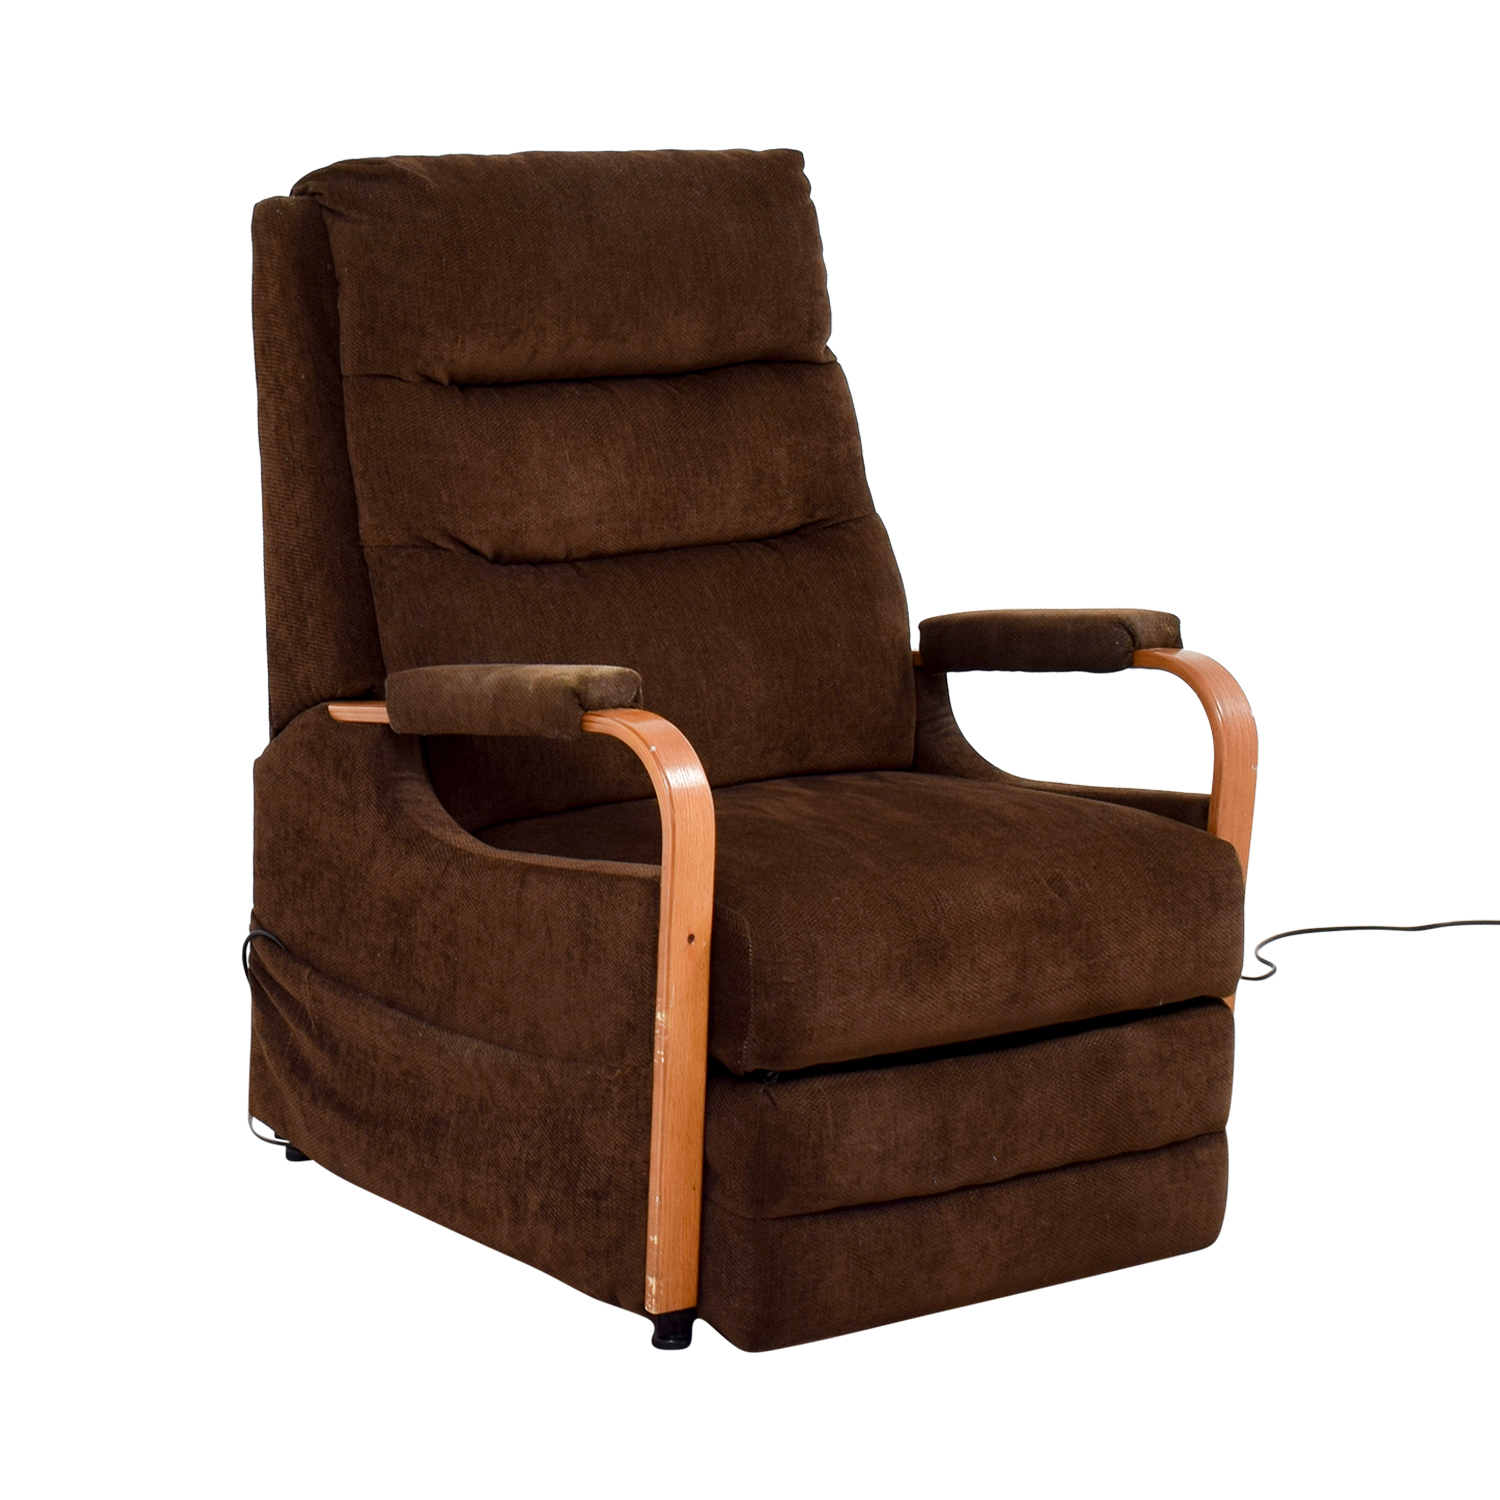 cheap hand chair reupholster office instructions 86 off bob 39s furniture brown remote